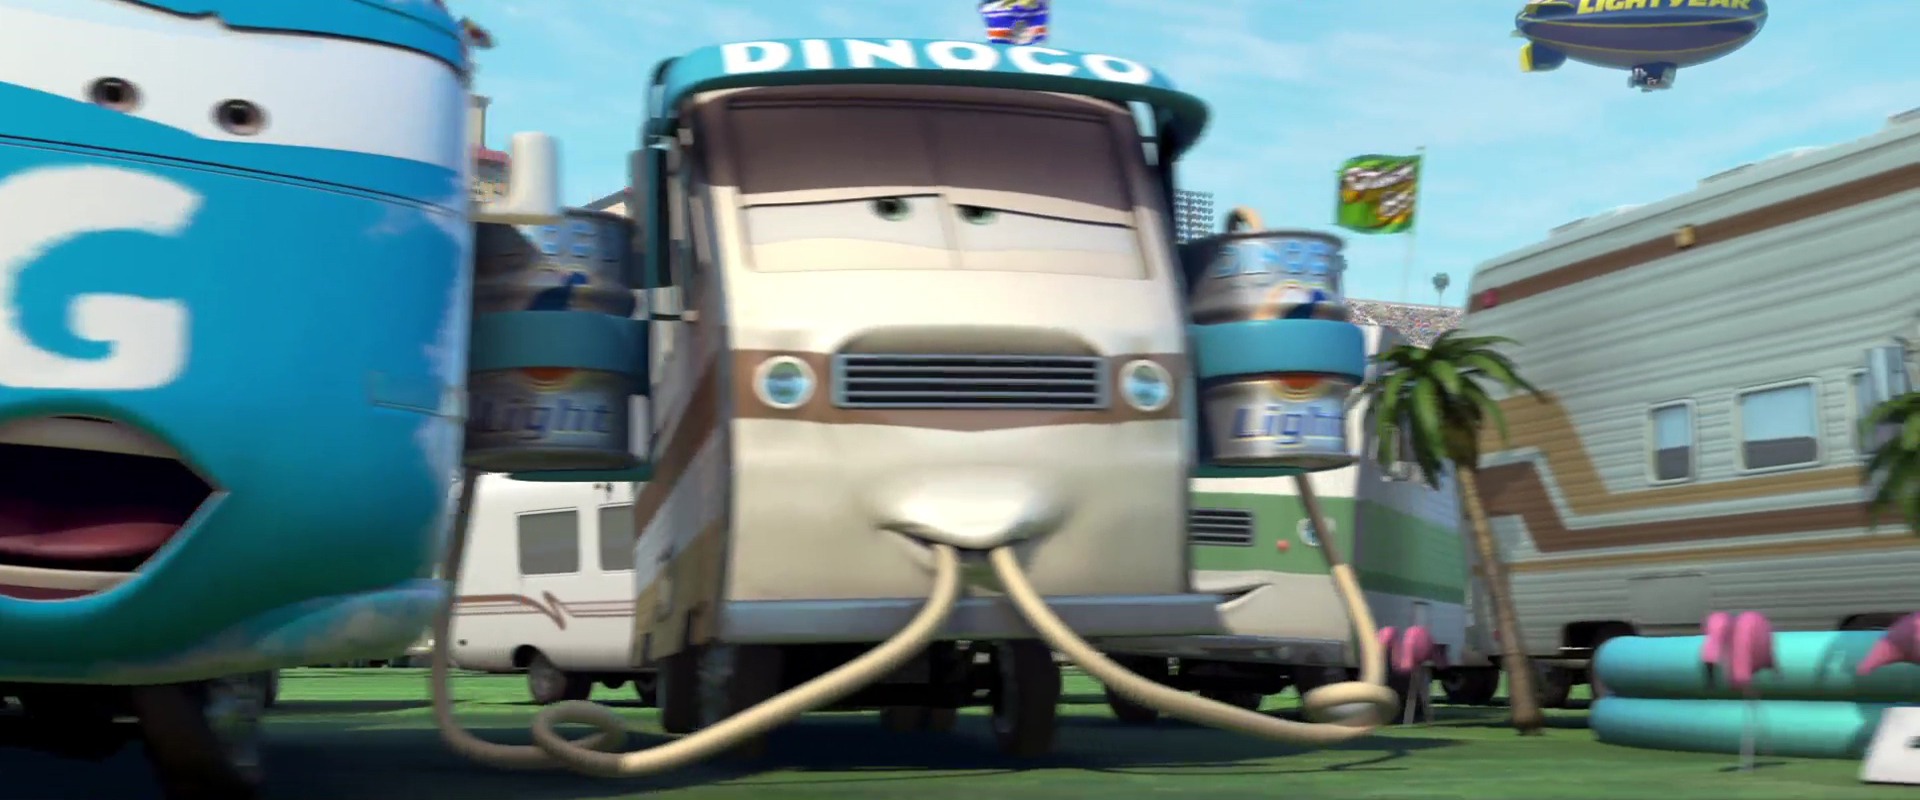 barry diesel personnage character pixar disney cars